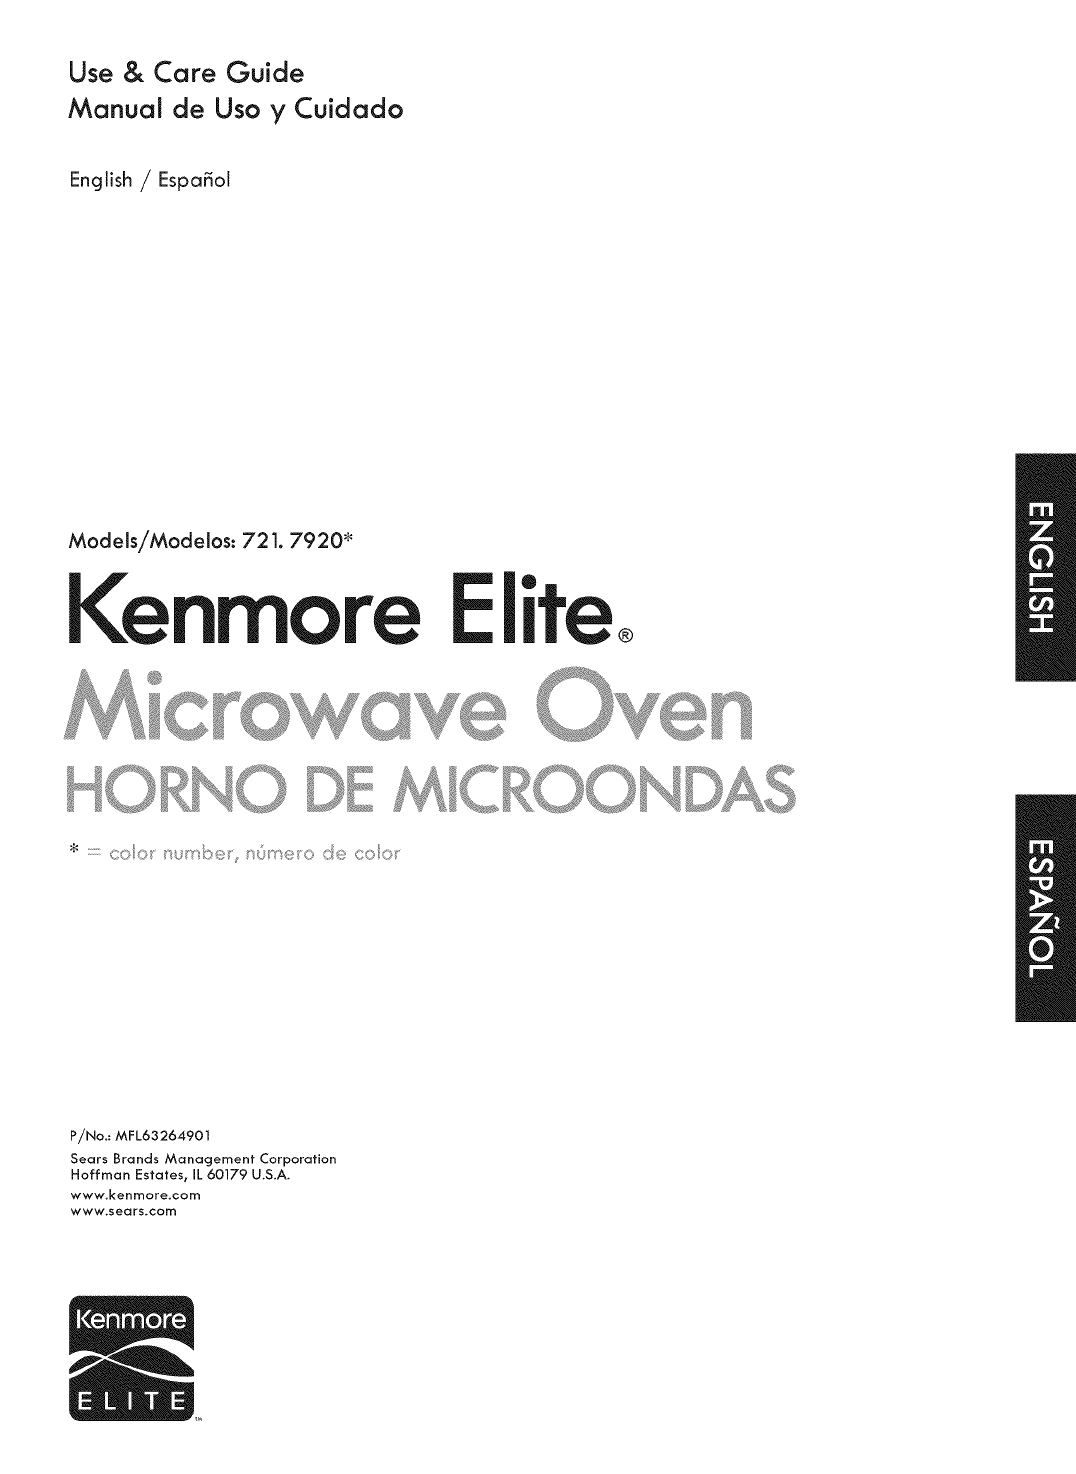 Kenmore Microwave Oven 721 7920 User Guide Manualsonline